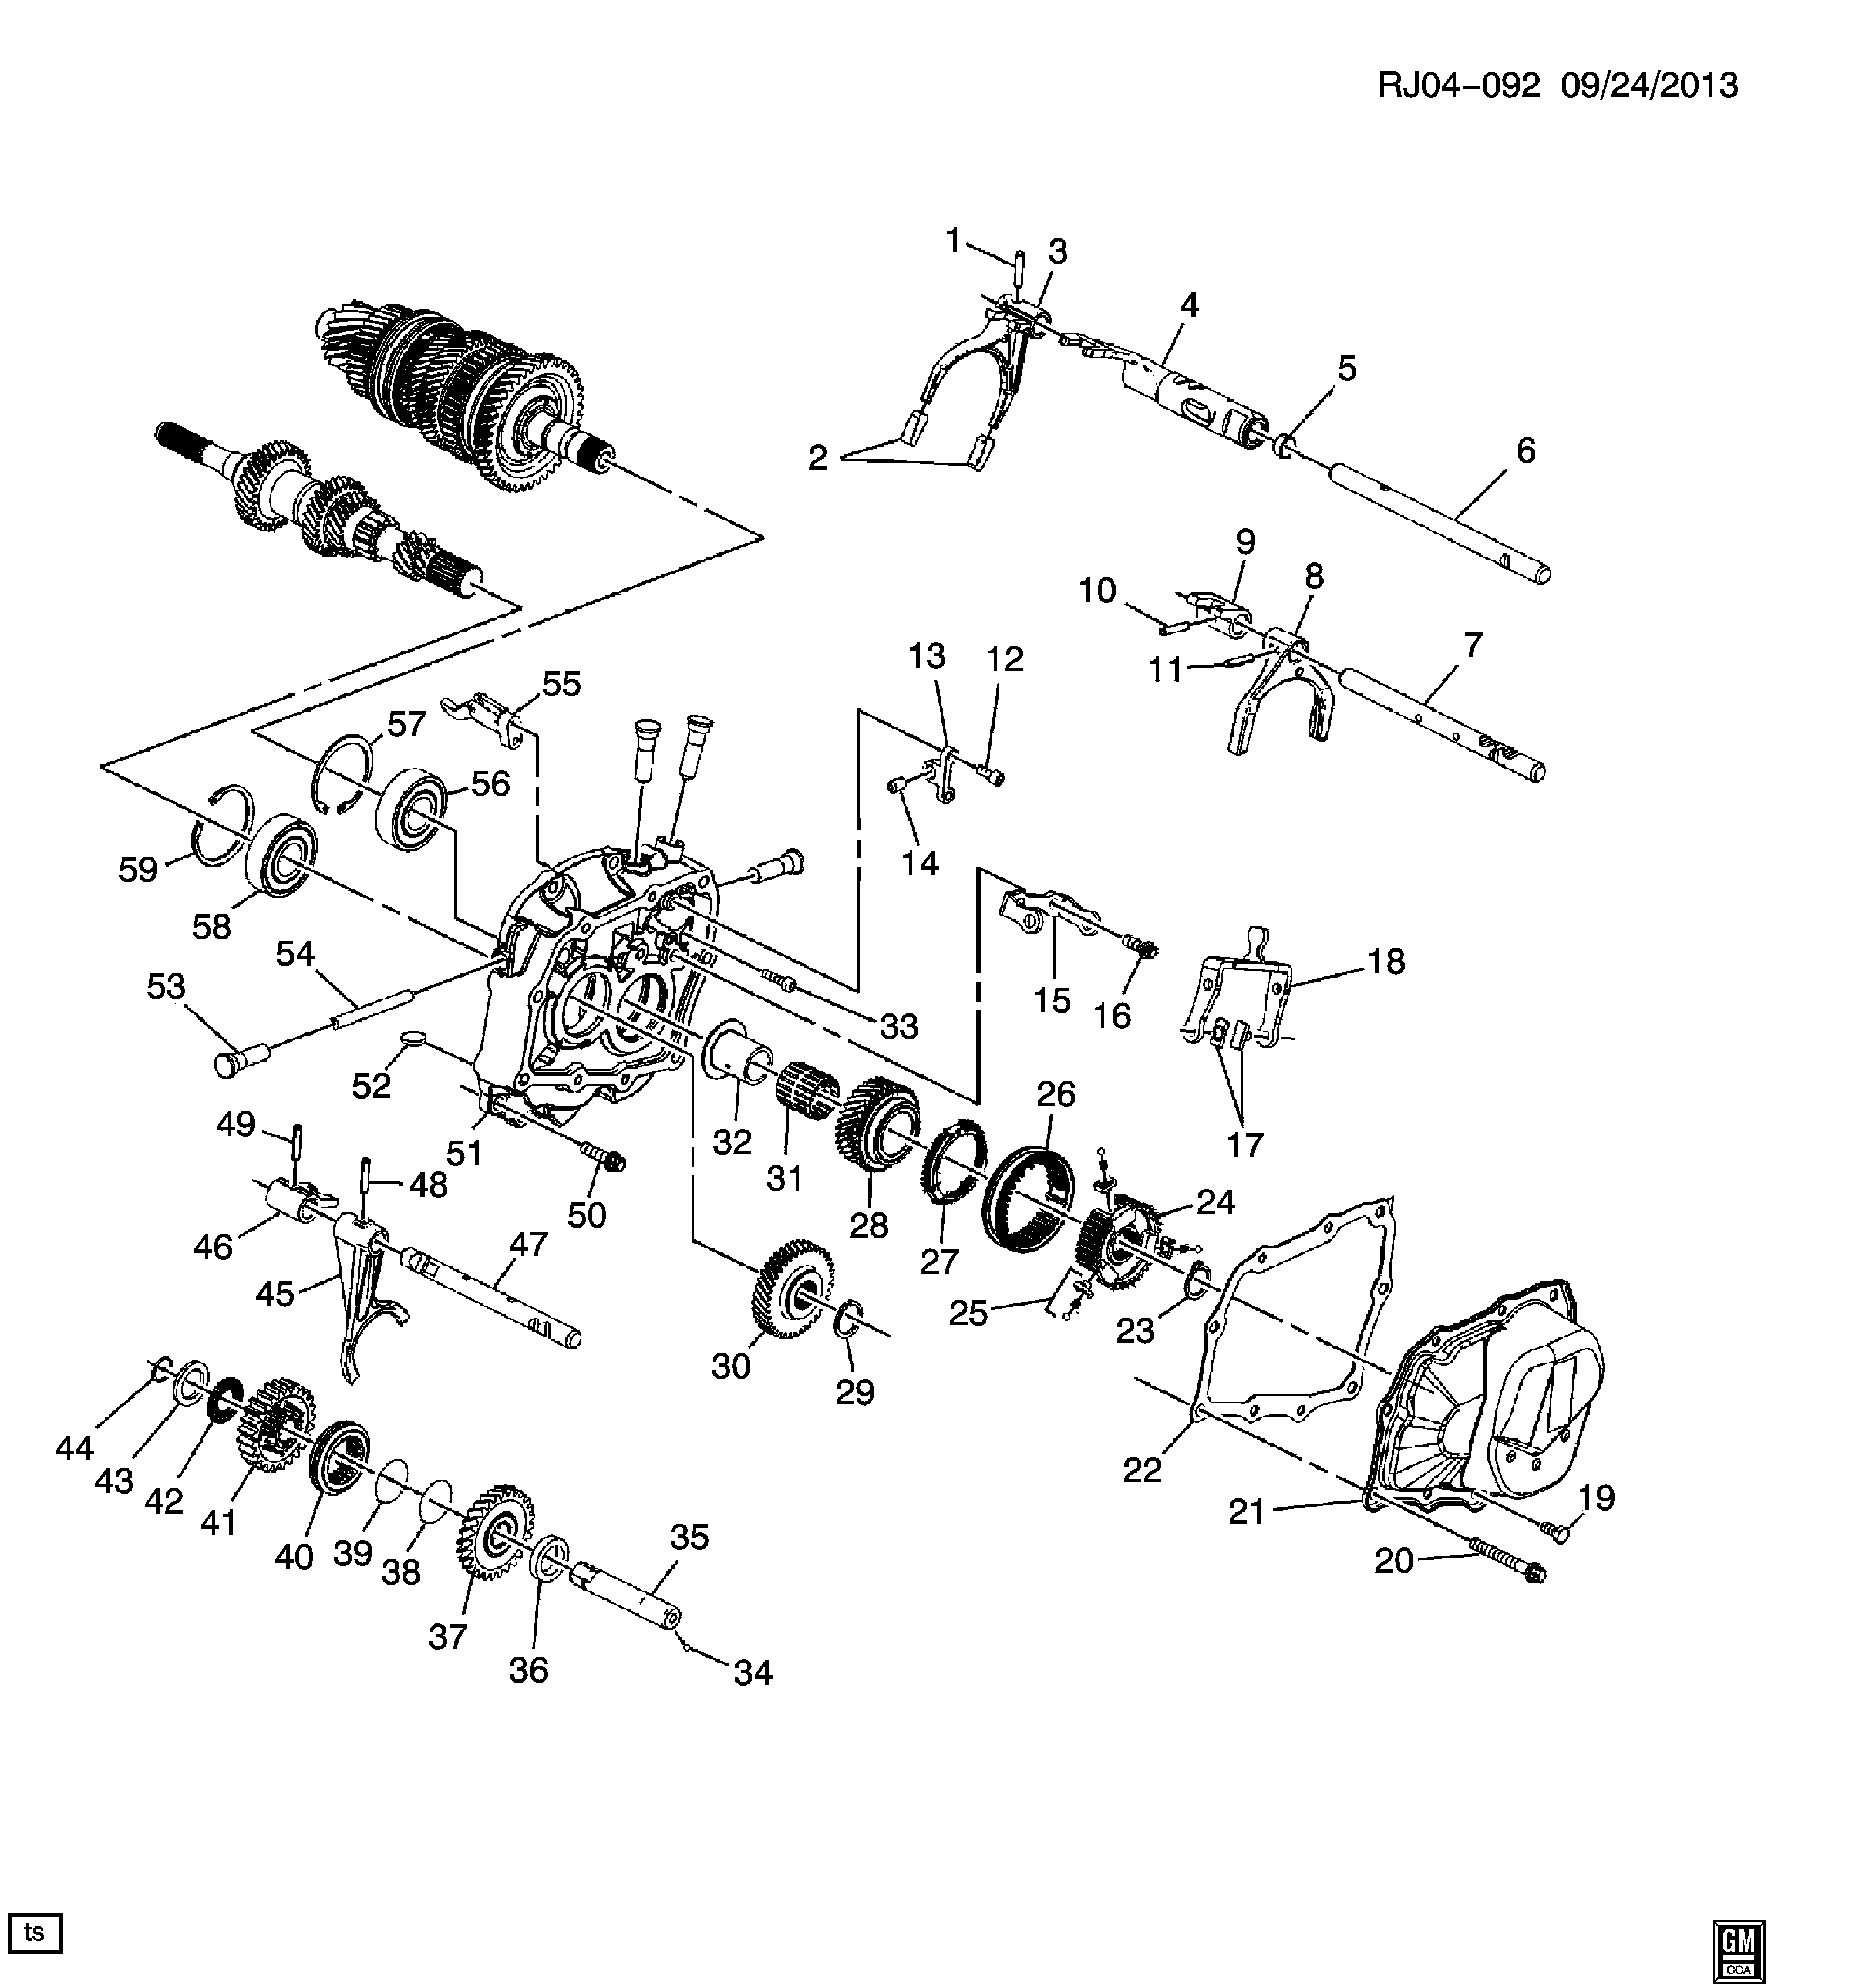 04 chevy aveo exhaust wiring diagram | wiring library 04 chevy aveo exhaust wiring diagram 2005 chevy aveo radio wiring diagram